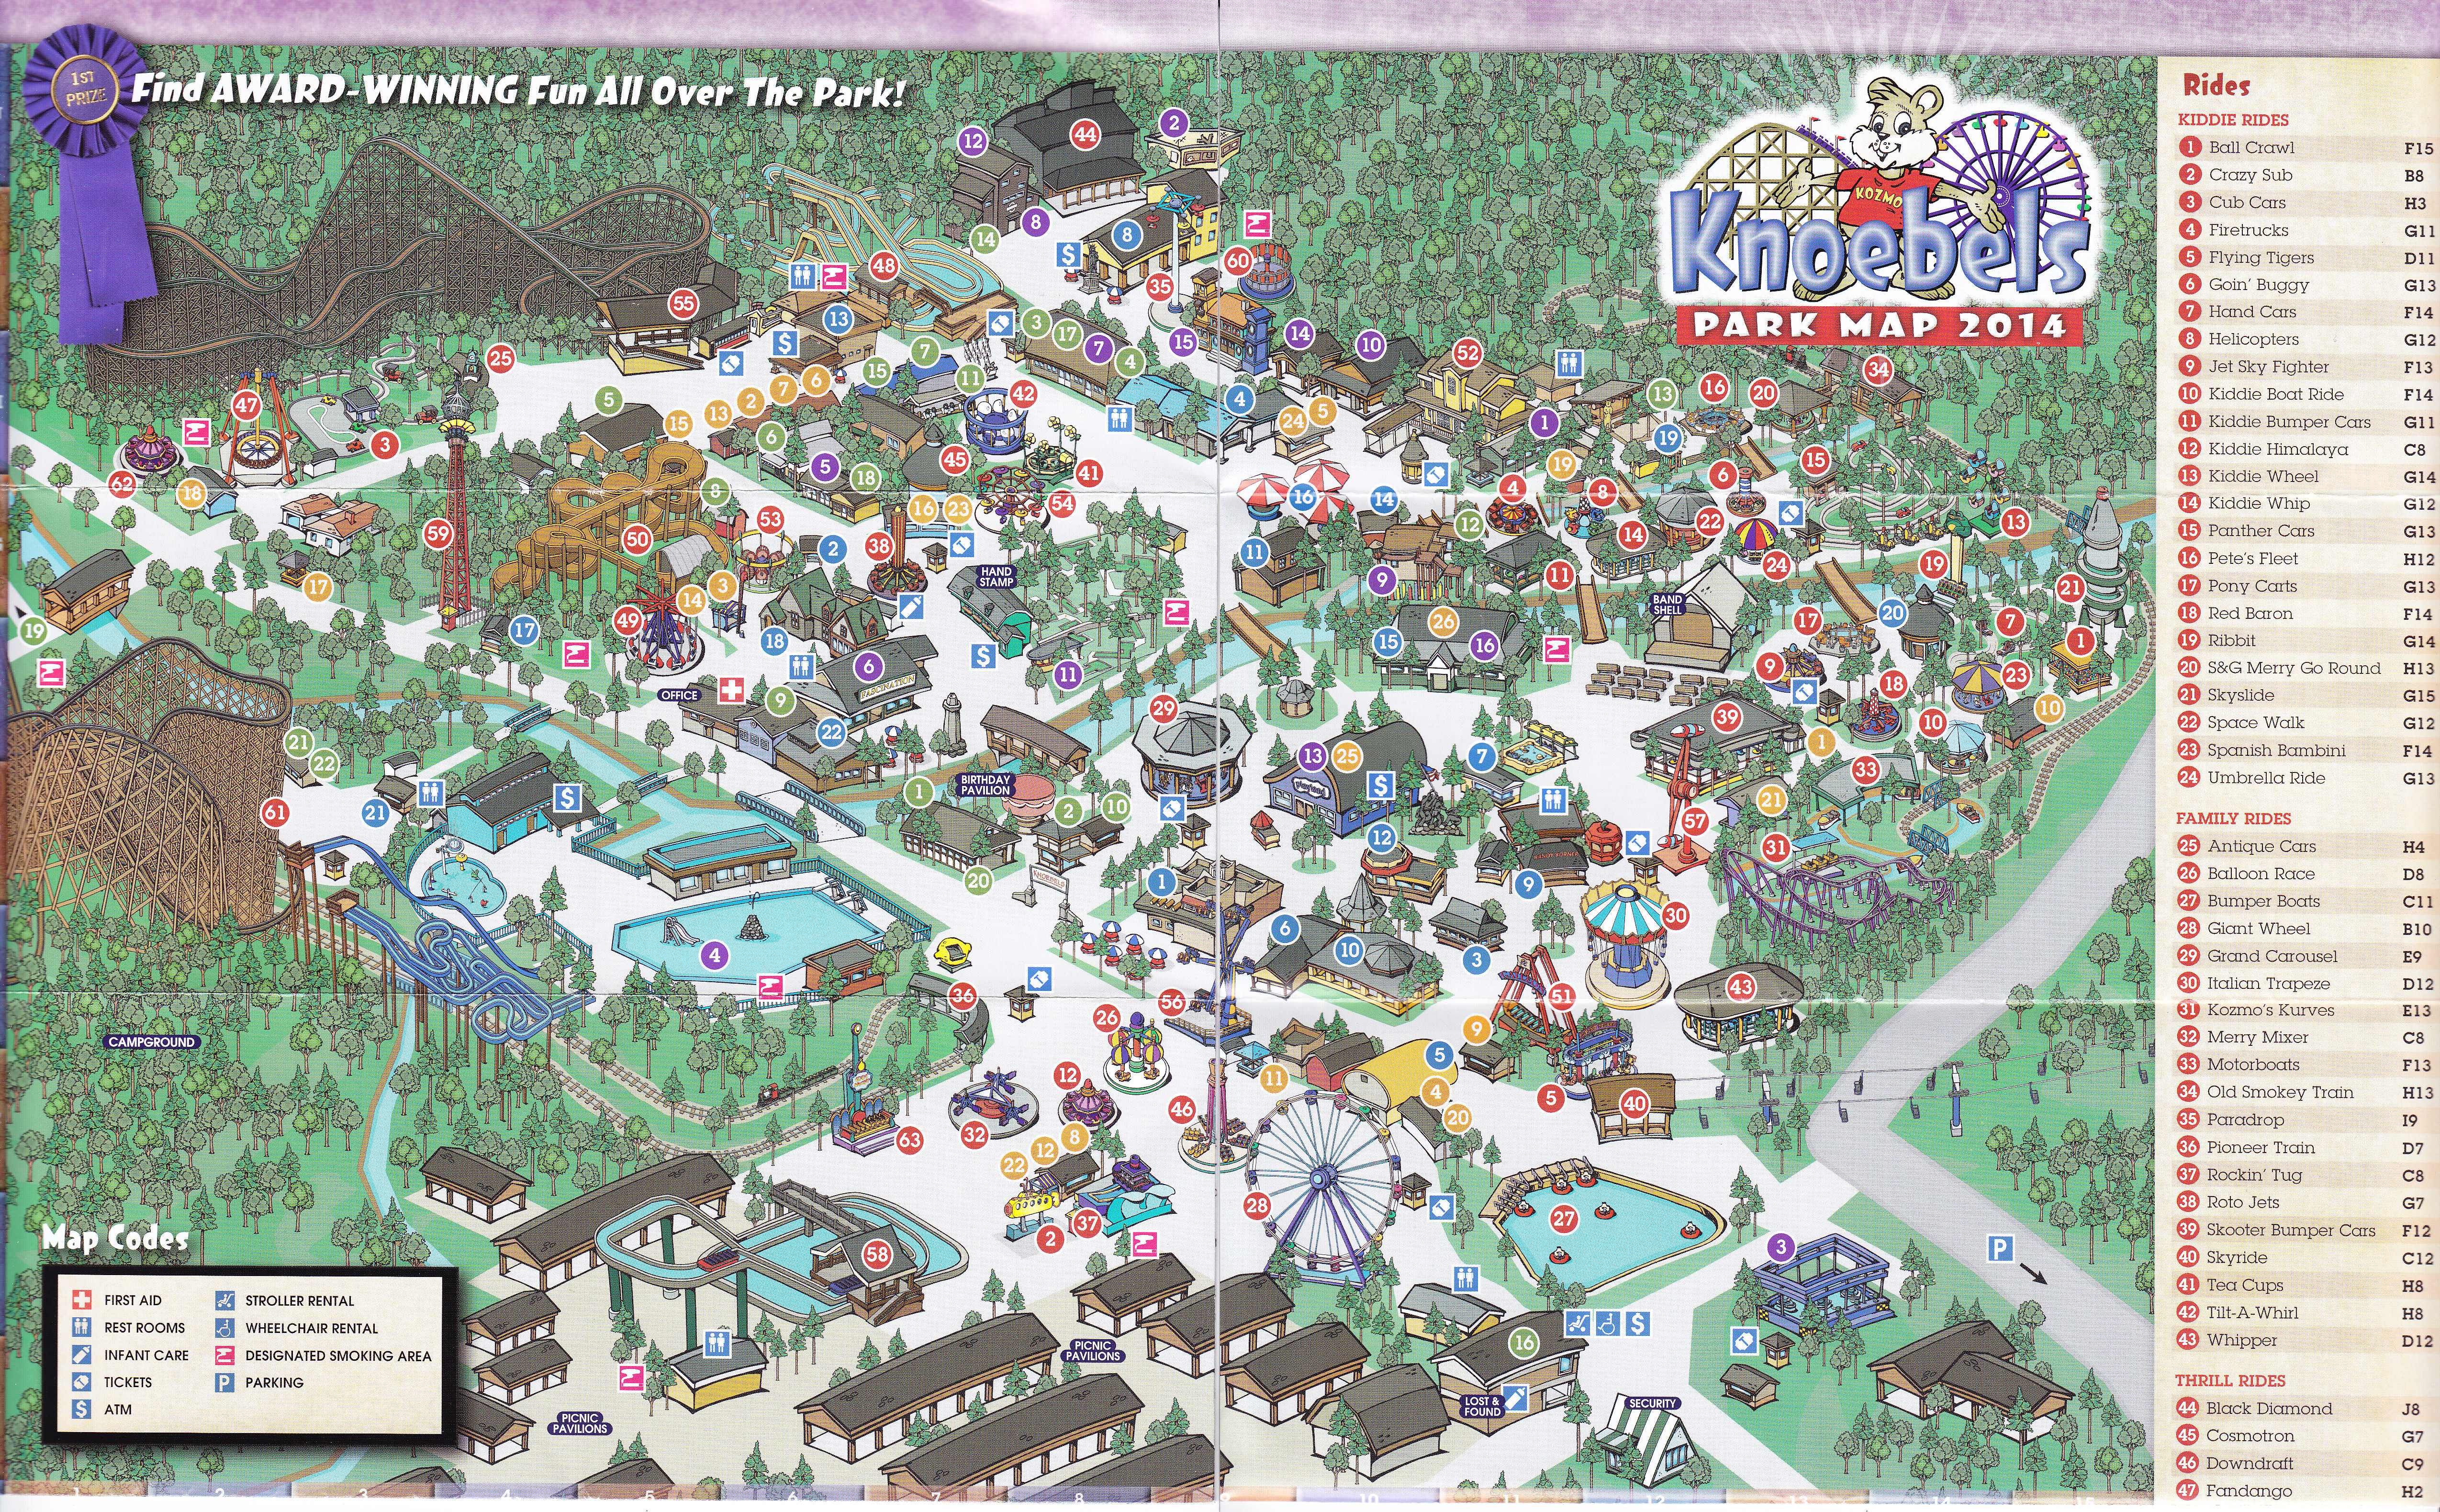 Hotels Near Knoebels Amut Park - All About The Hotel on playland park map, knobles theme park map, disney's animal kingdom map, efteling park map, paramount's kings dominion map, quassy park map, elysburg pa map, paramount's carowinds map, liseberg park map, wizarding world of harry potter park map, delgrosso's park map, story land park map, knott's berry farm map, camelbeach park map, great escape park map, busch gardens water park map, land of make believe map, michigan's adventure park map, california's great america park map, lake winnepesaukah park map,